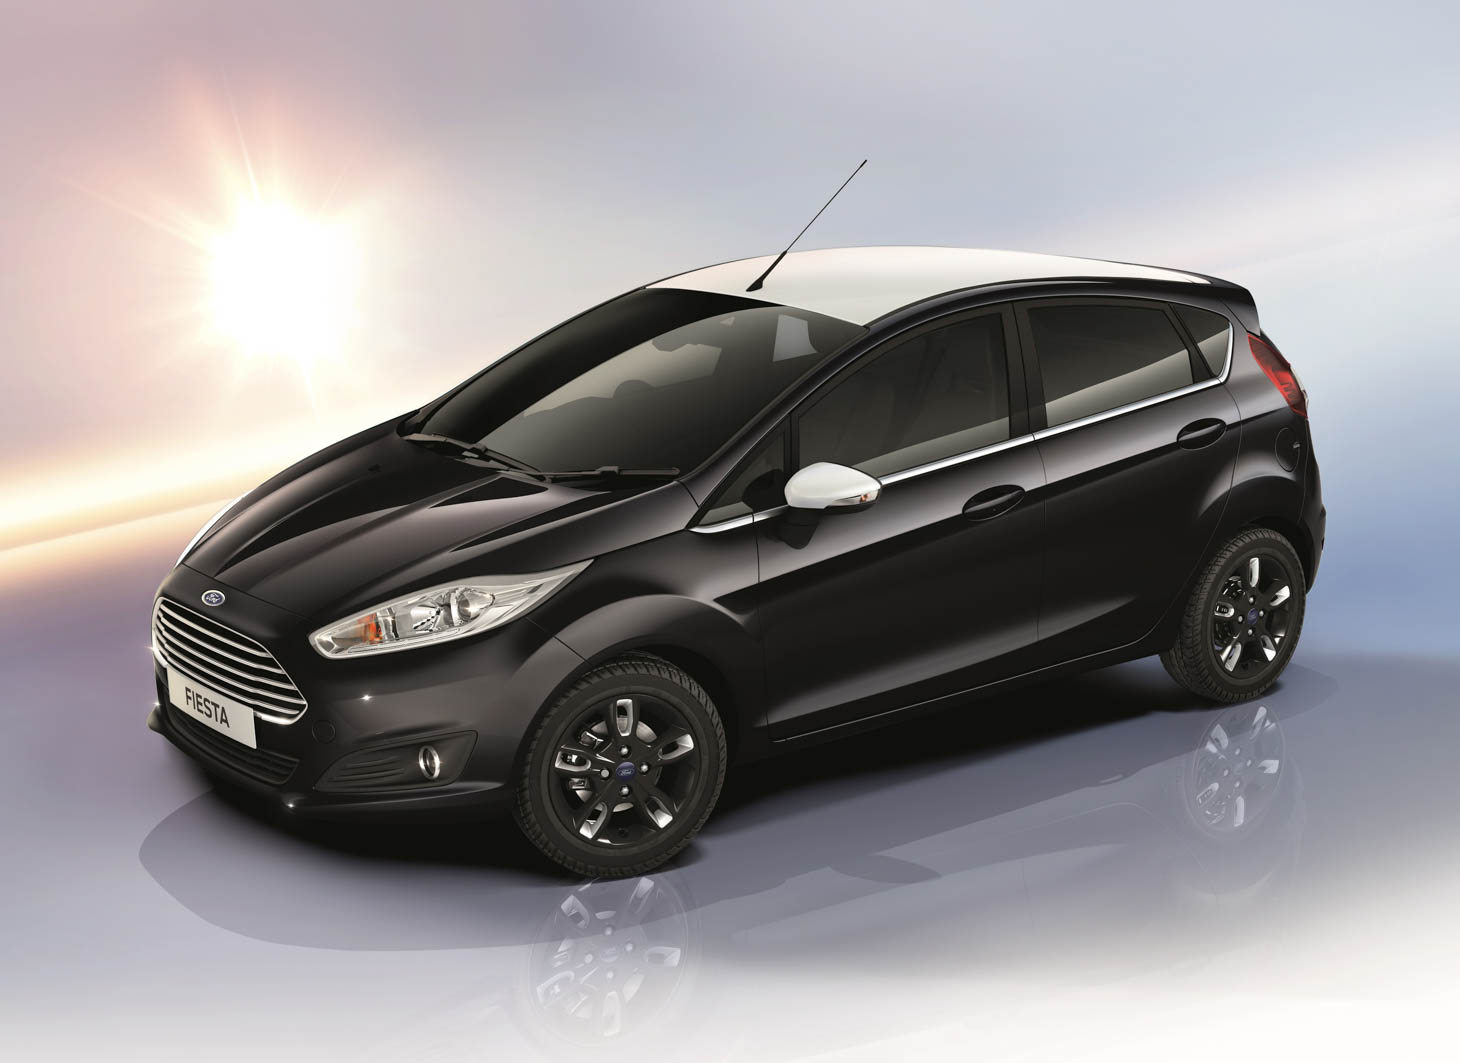 Ford small cars debut new 2016 editions predstavujeme